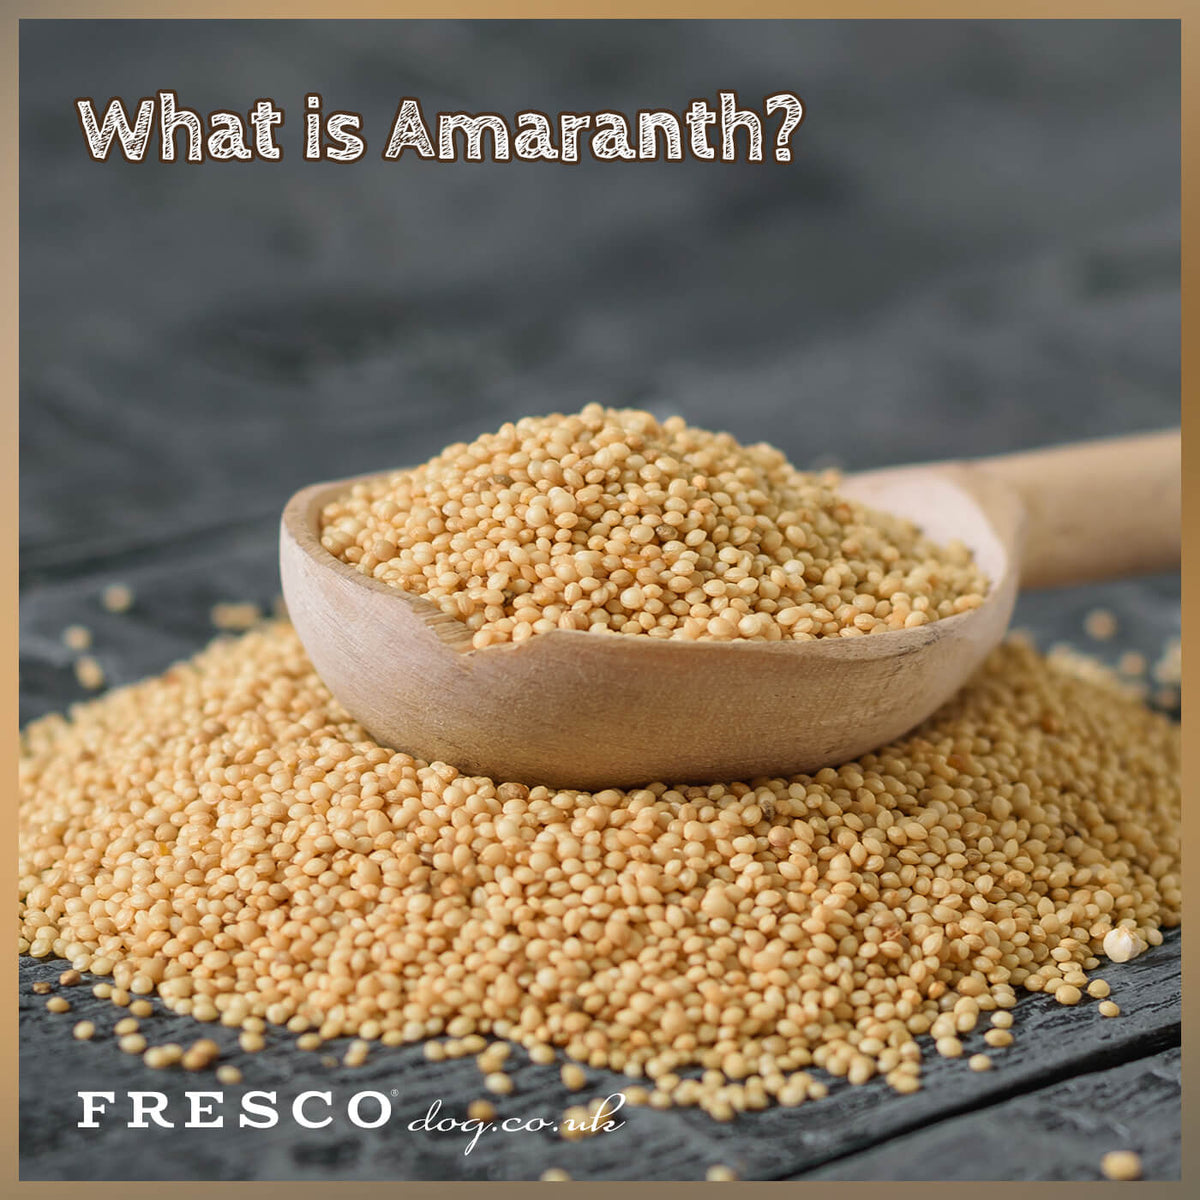 Amaranth in dog food?......YES please